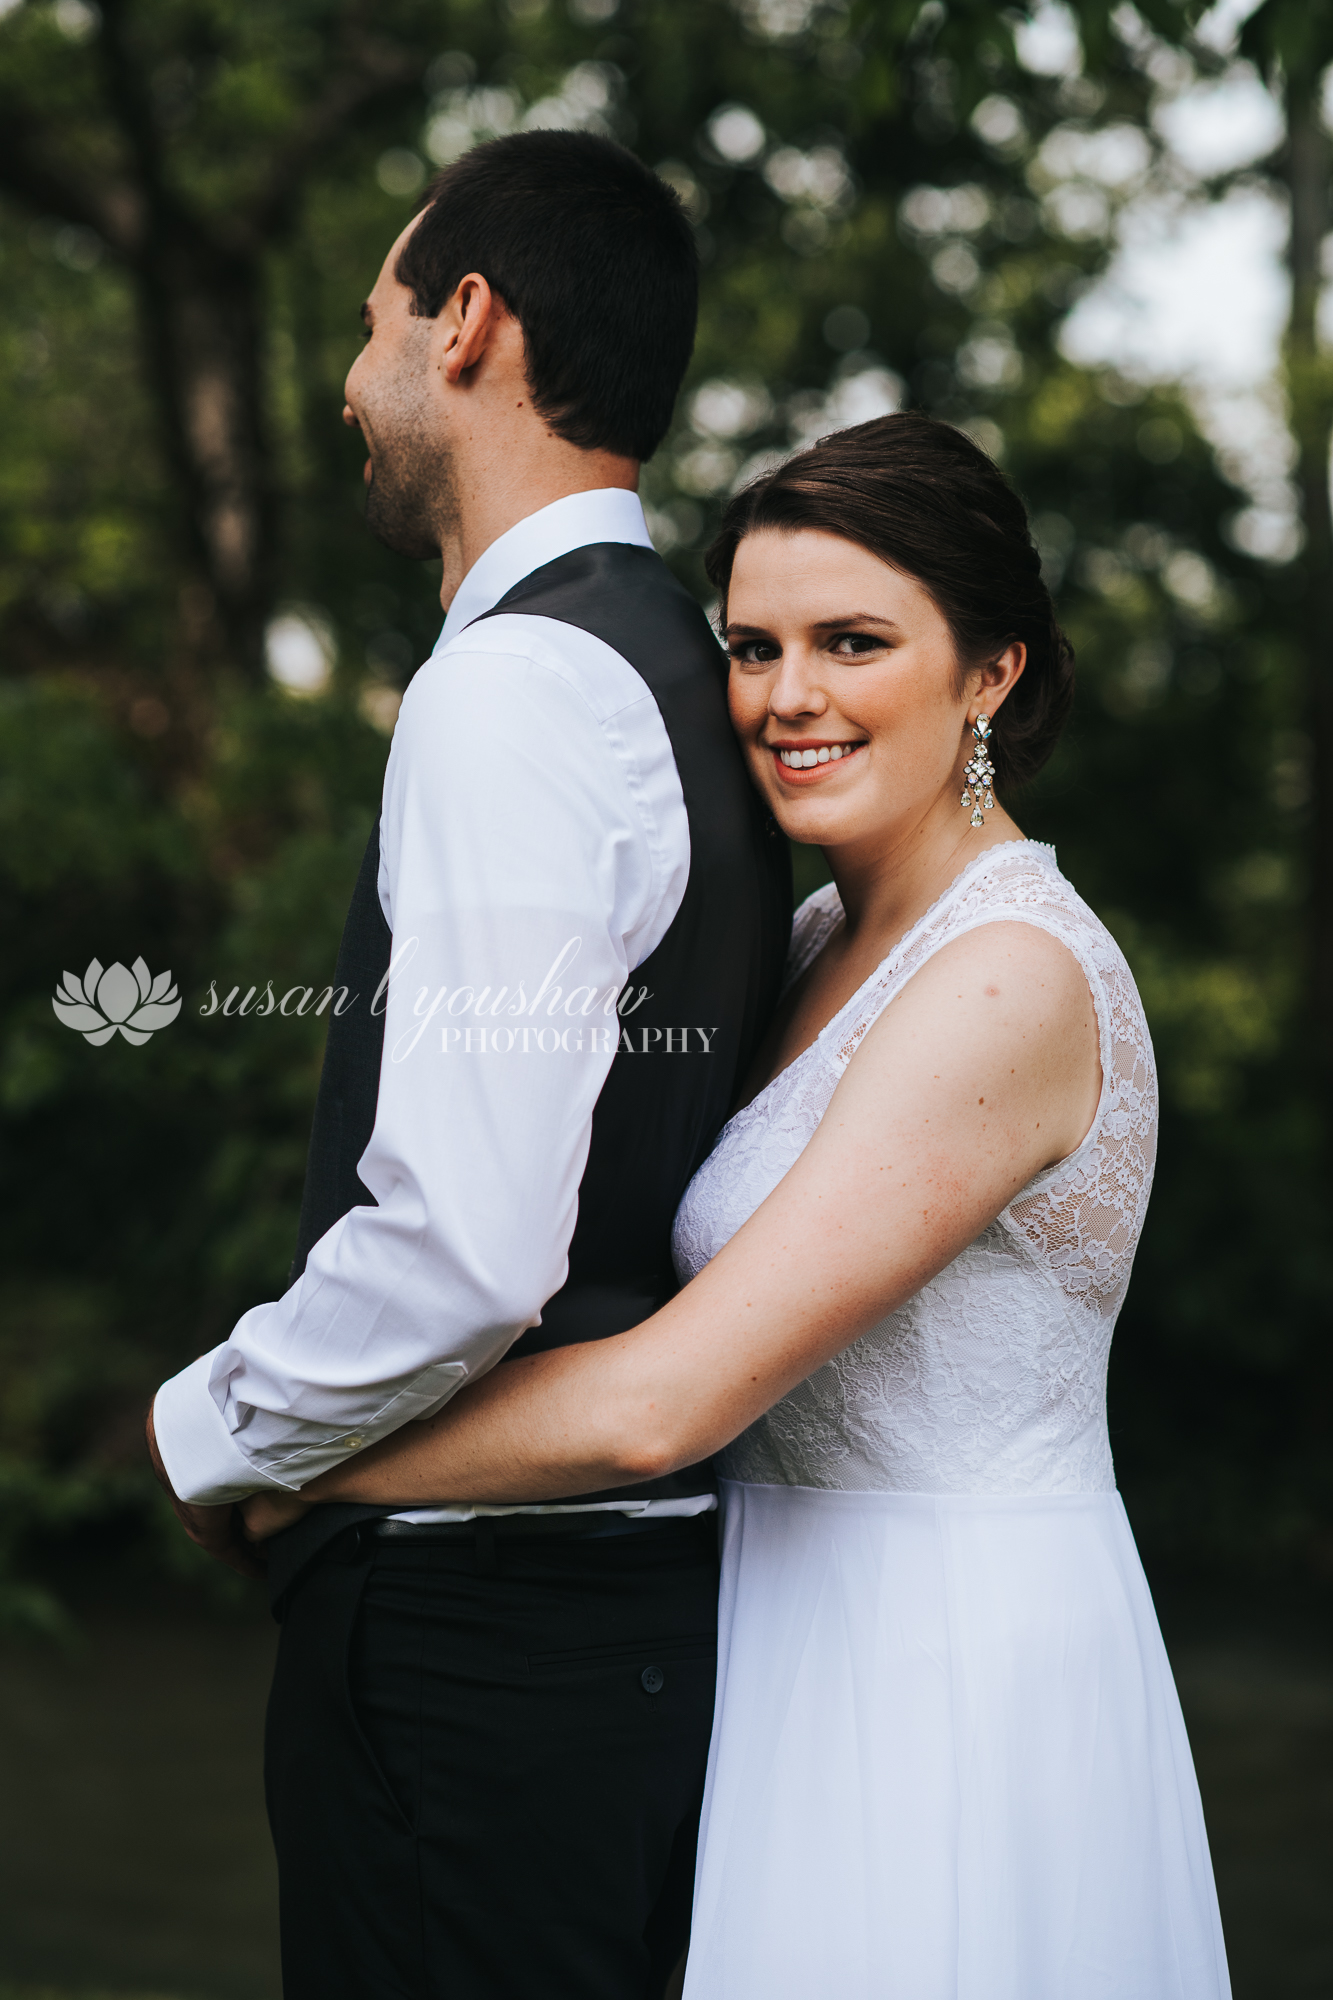 Adena and  Erik Wedding 05-17-2019 SLY Photography-40.jpg